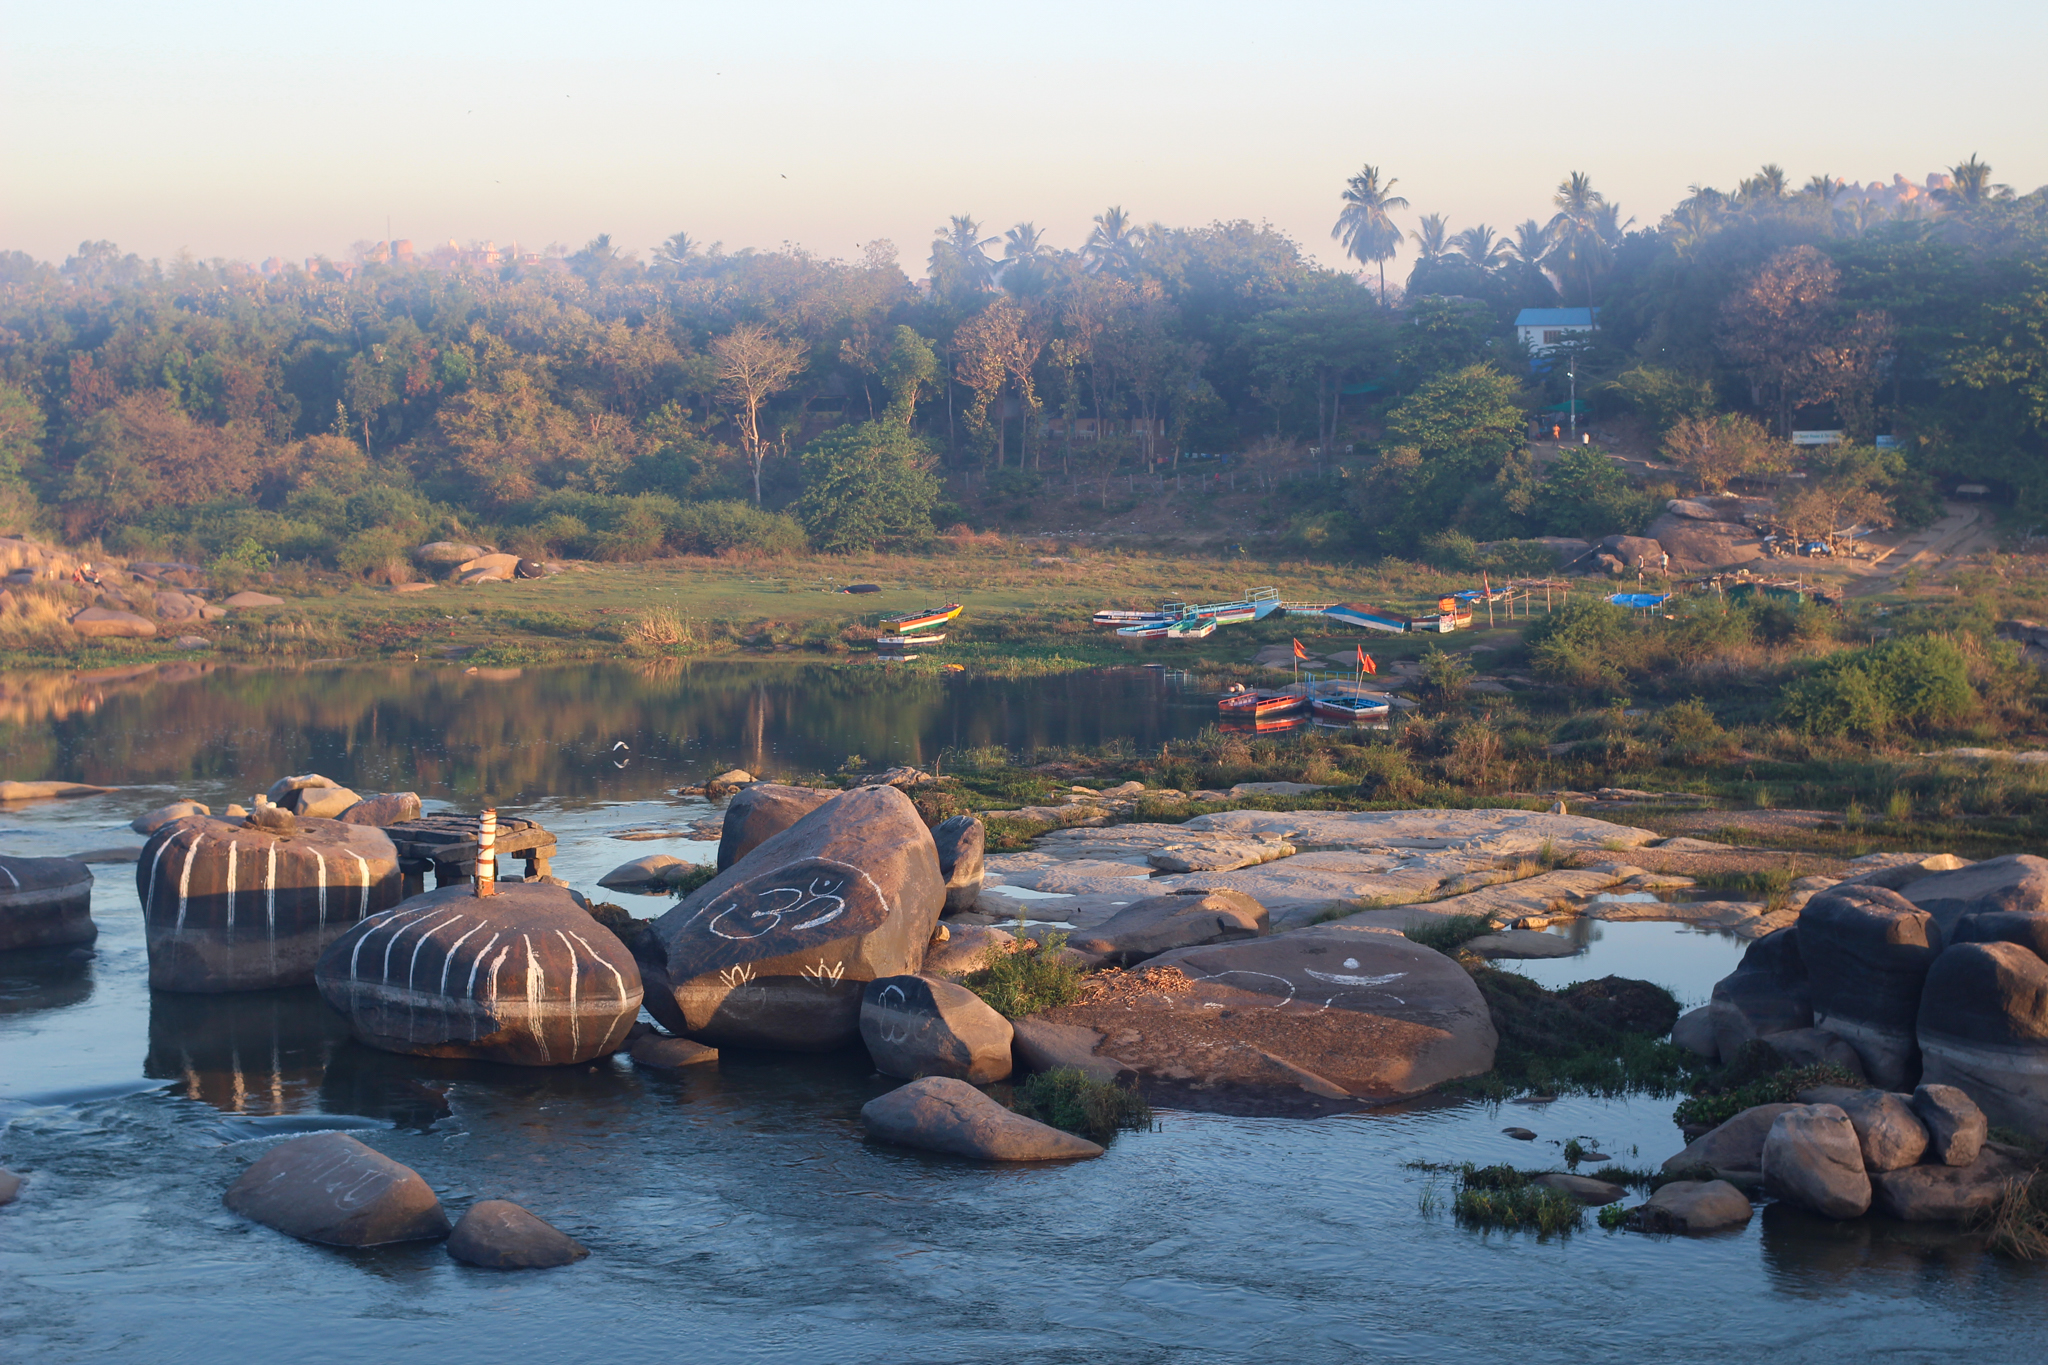 Crossing the river from Hampi Bazaar to Hippy Island by boat at sunrise